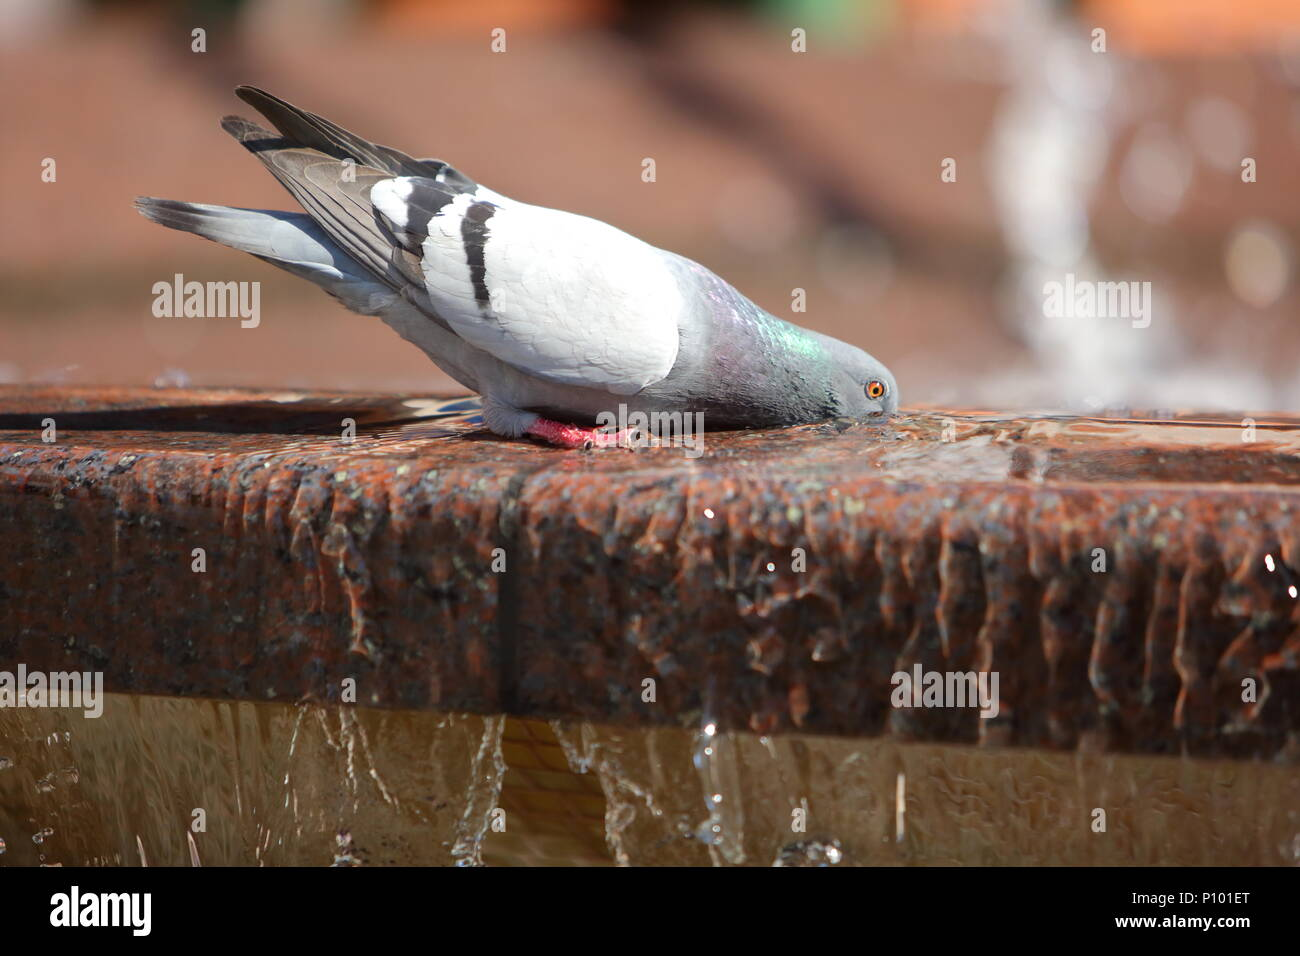 A thirsty pigeon quenches thirst in an urban fountain. - Stock Image